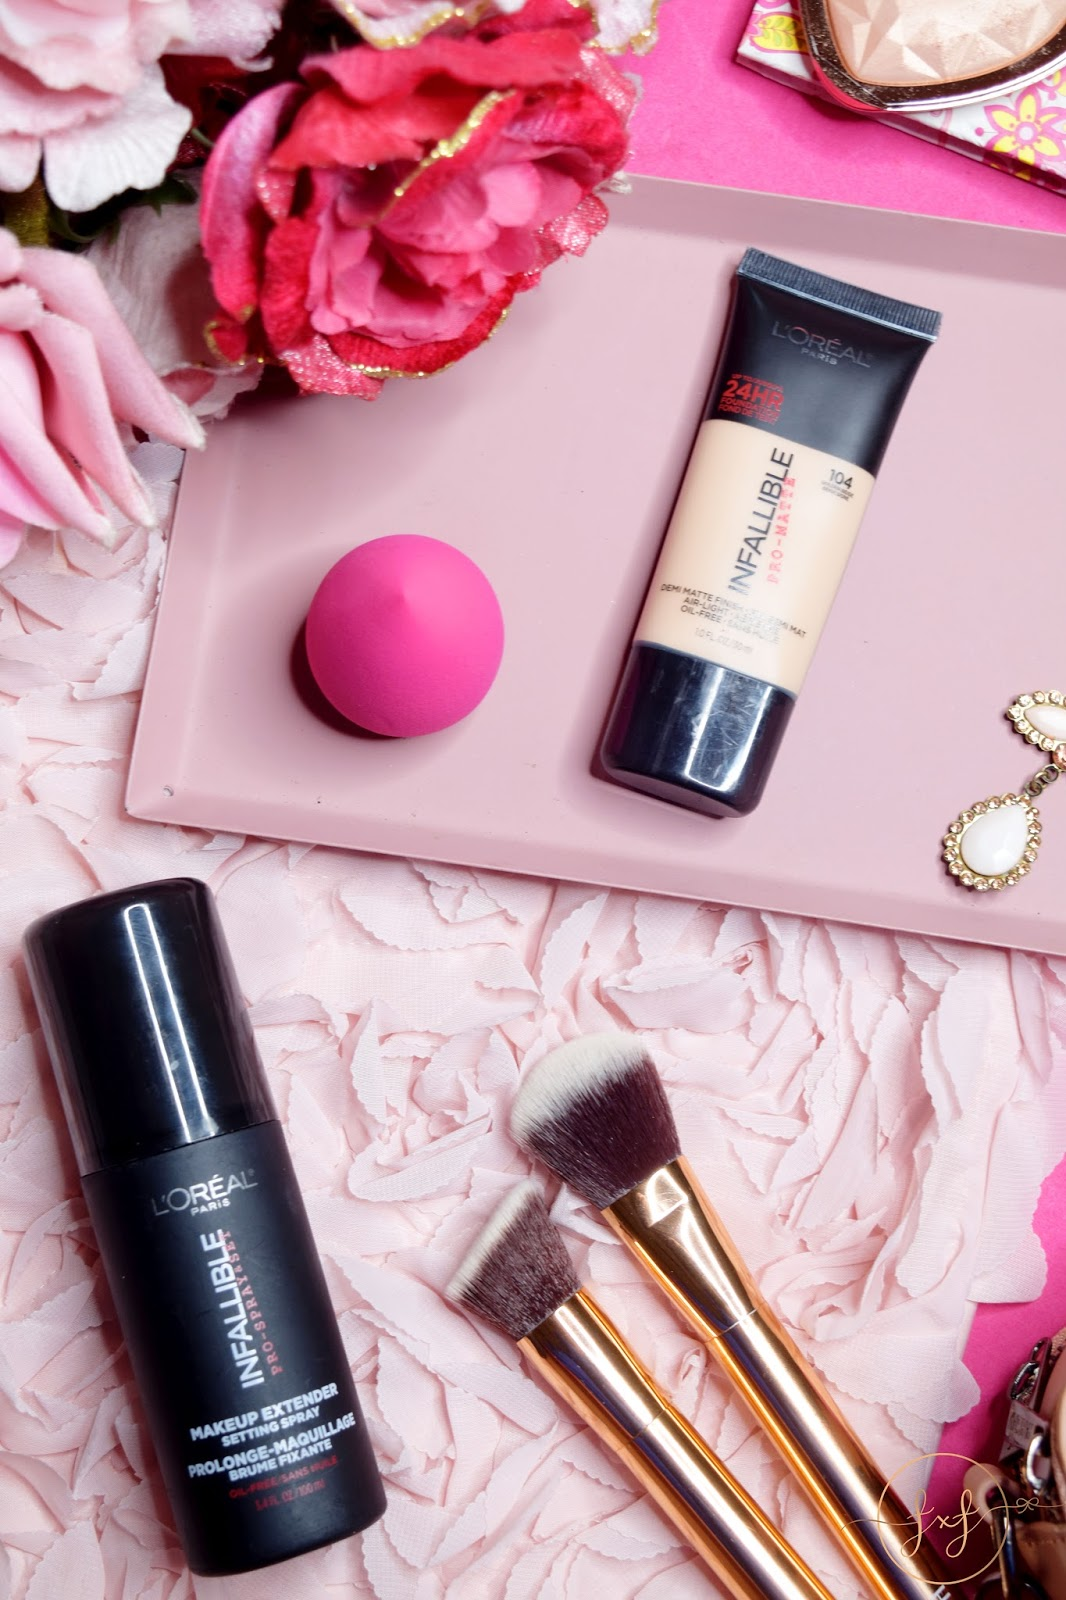 L'oreal Infallible Pro-Matte Foundation & Setting Spray | Review & Swatches